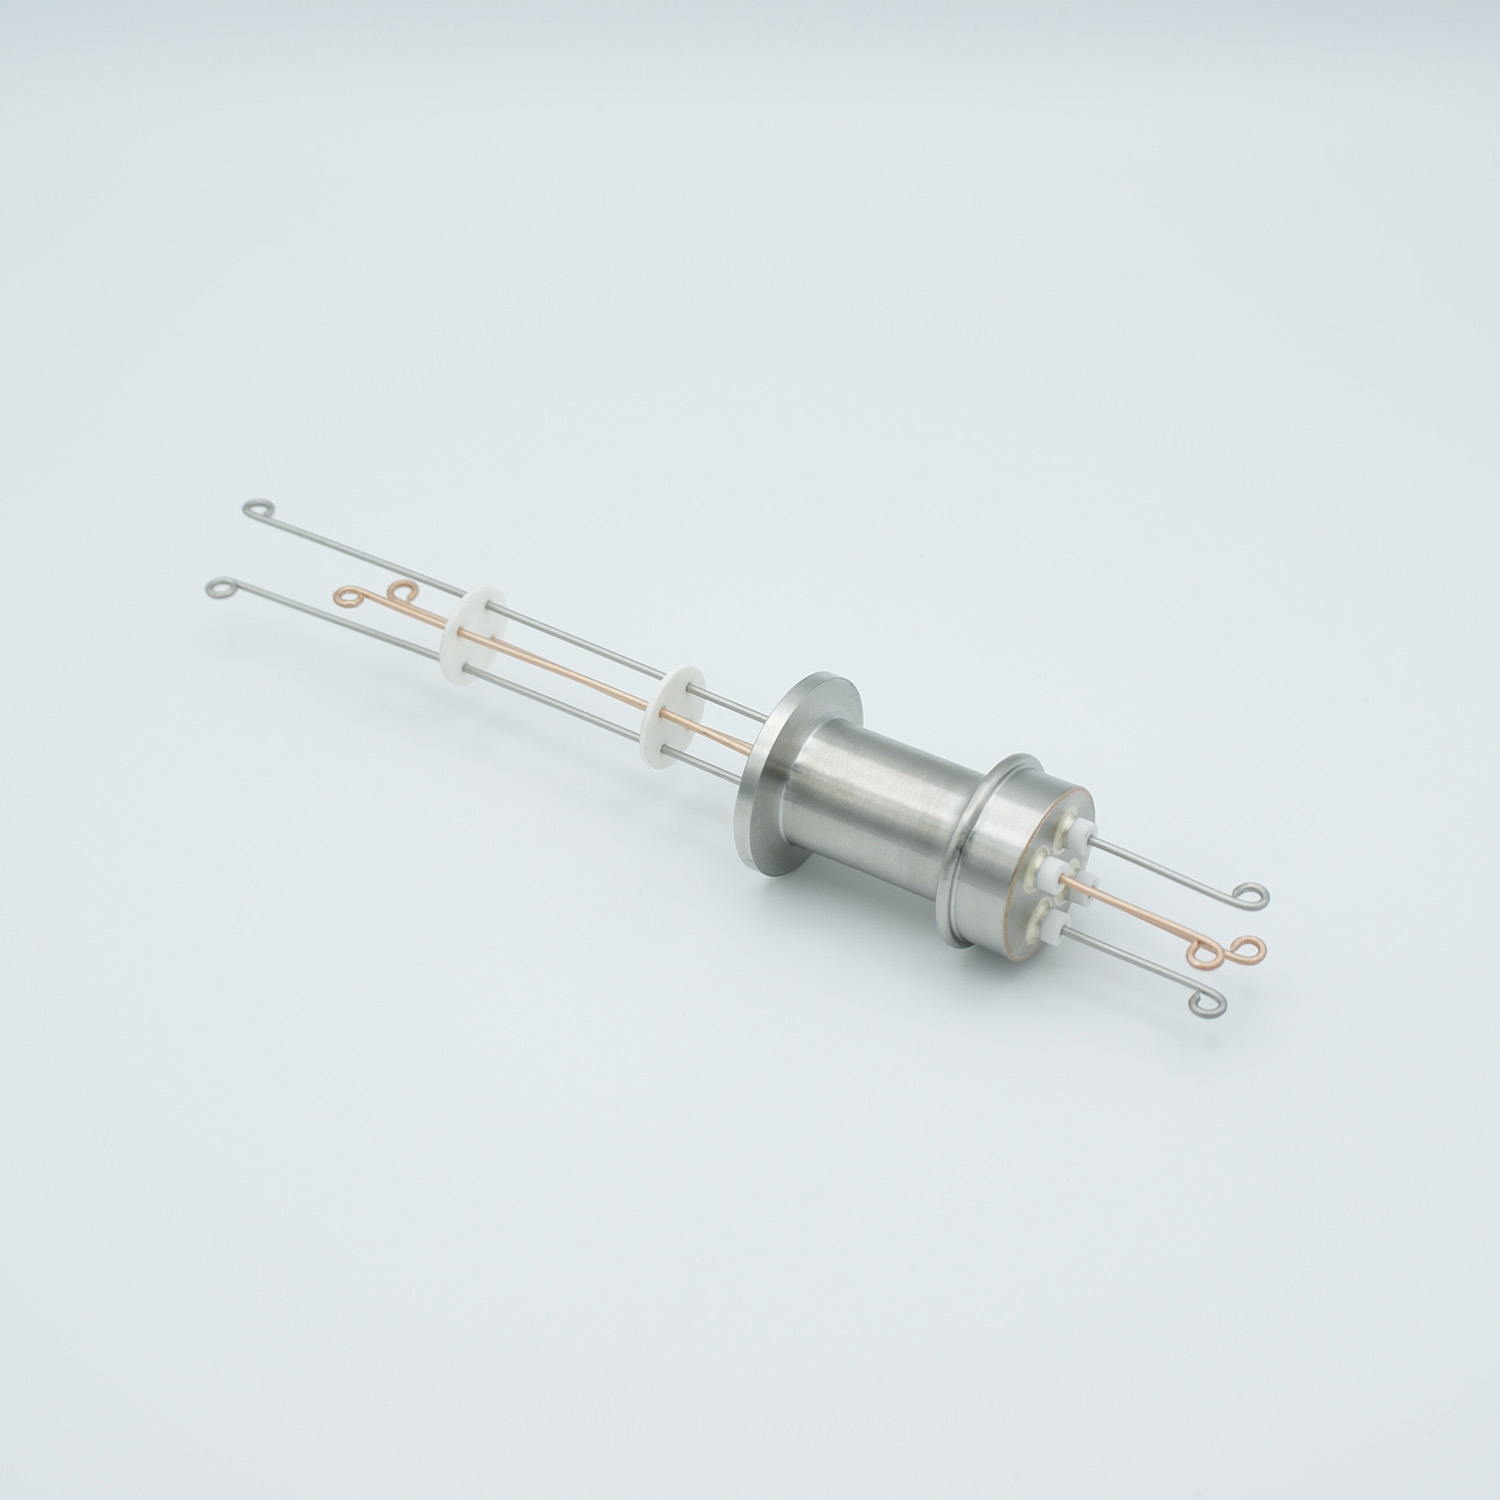 2 pair Thermocouple type-T feedthrough with both side connectors included, DN16KF flange